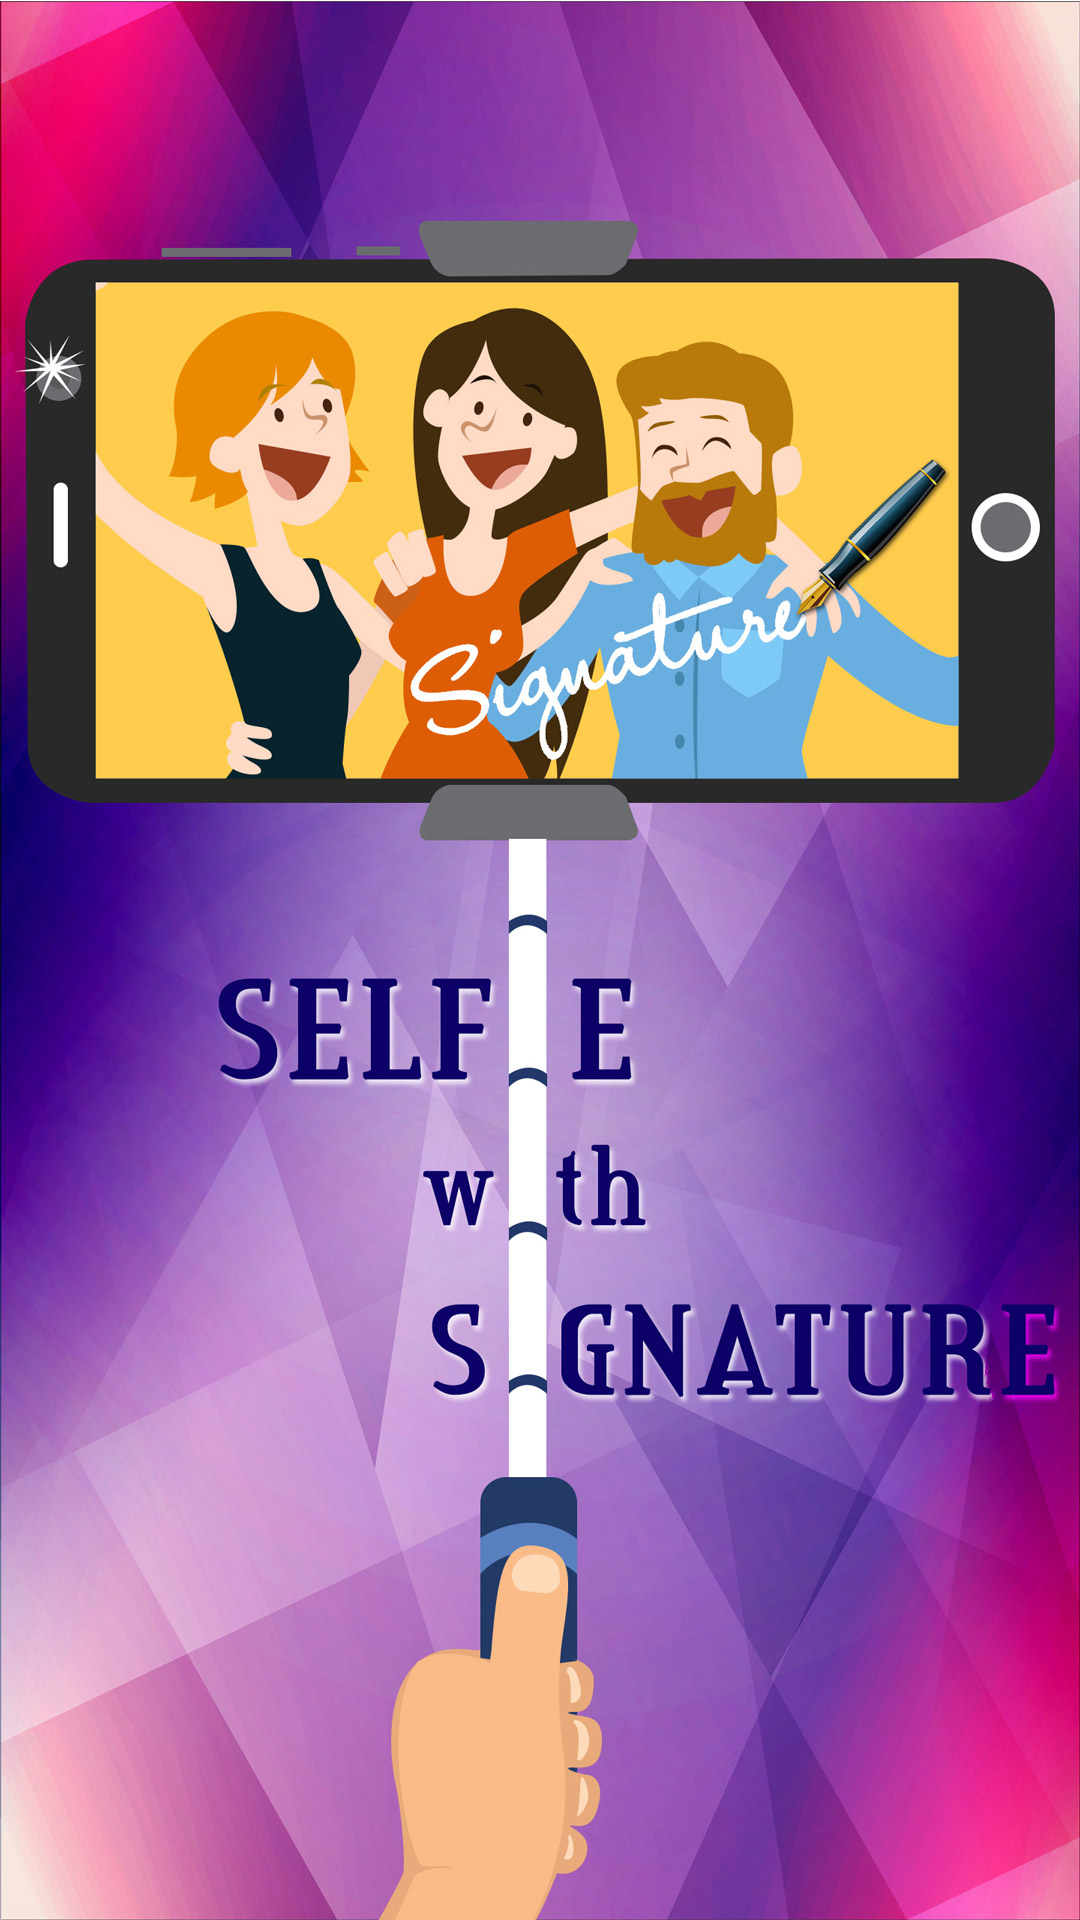 Selfie with Signature